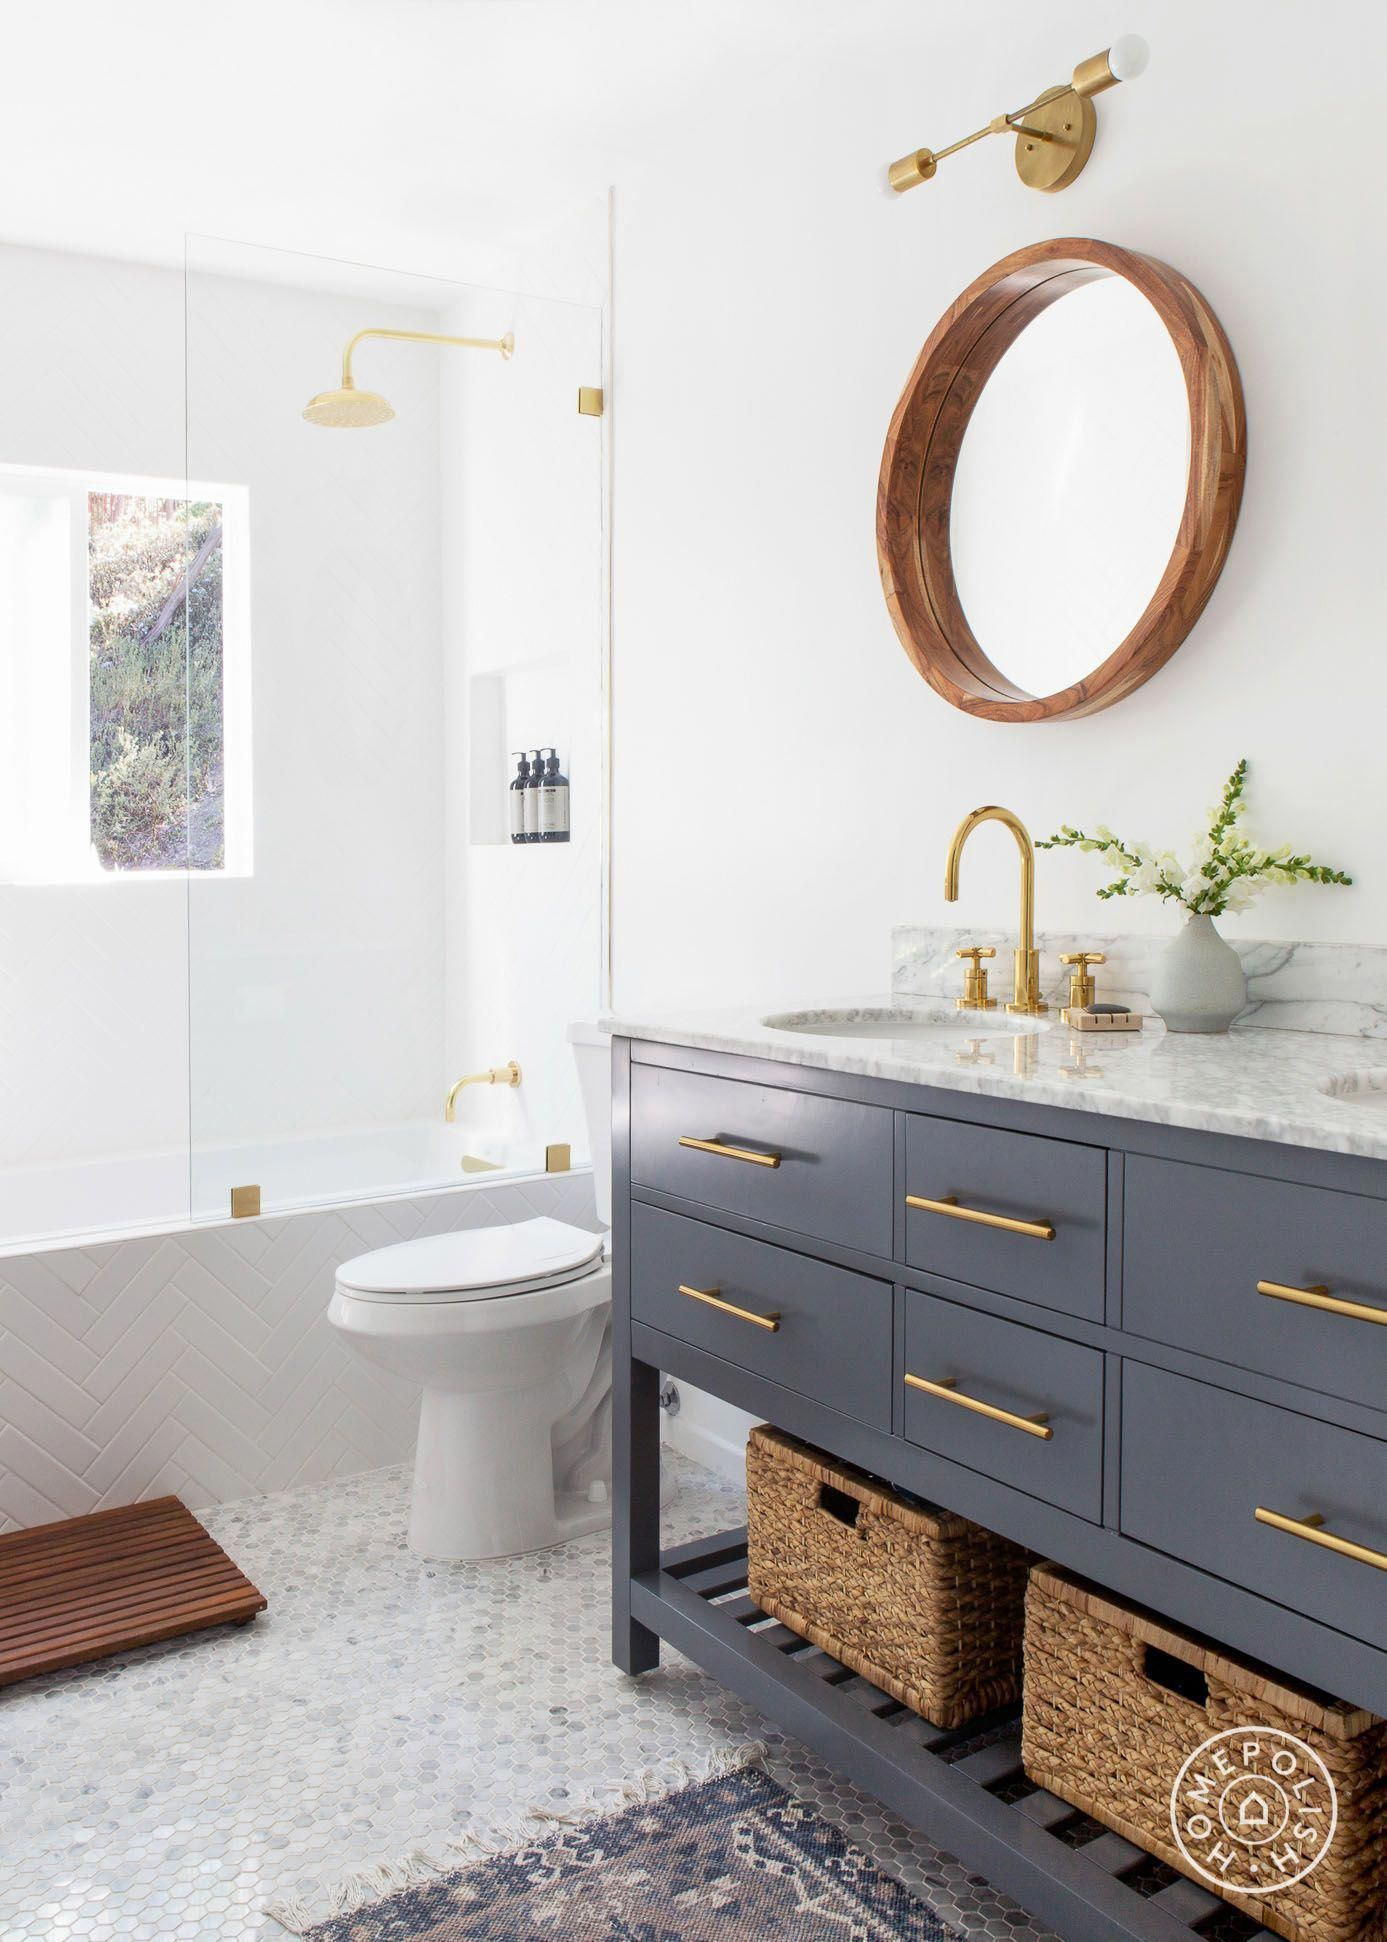 Modern relaxed bathroom style by homepolish designer kaitlin thomas